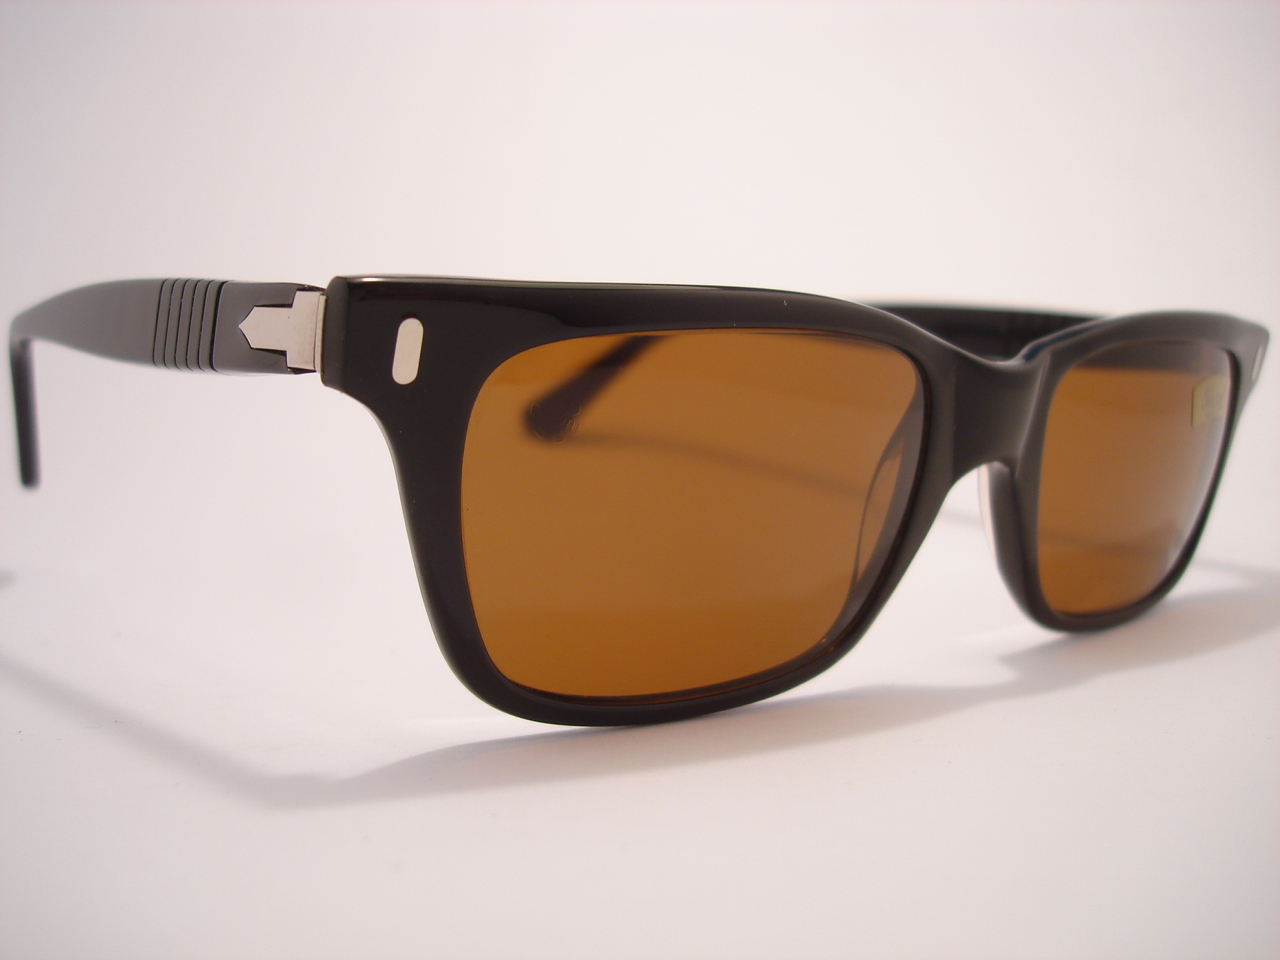 Theothersideofthepillow Vintage Persol By Ratti 9271